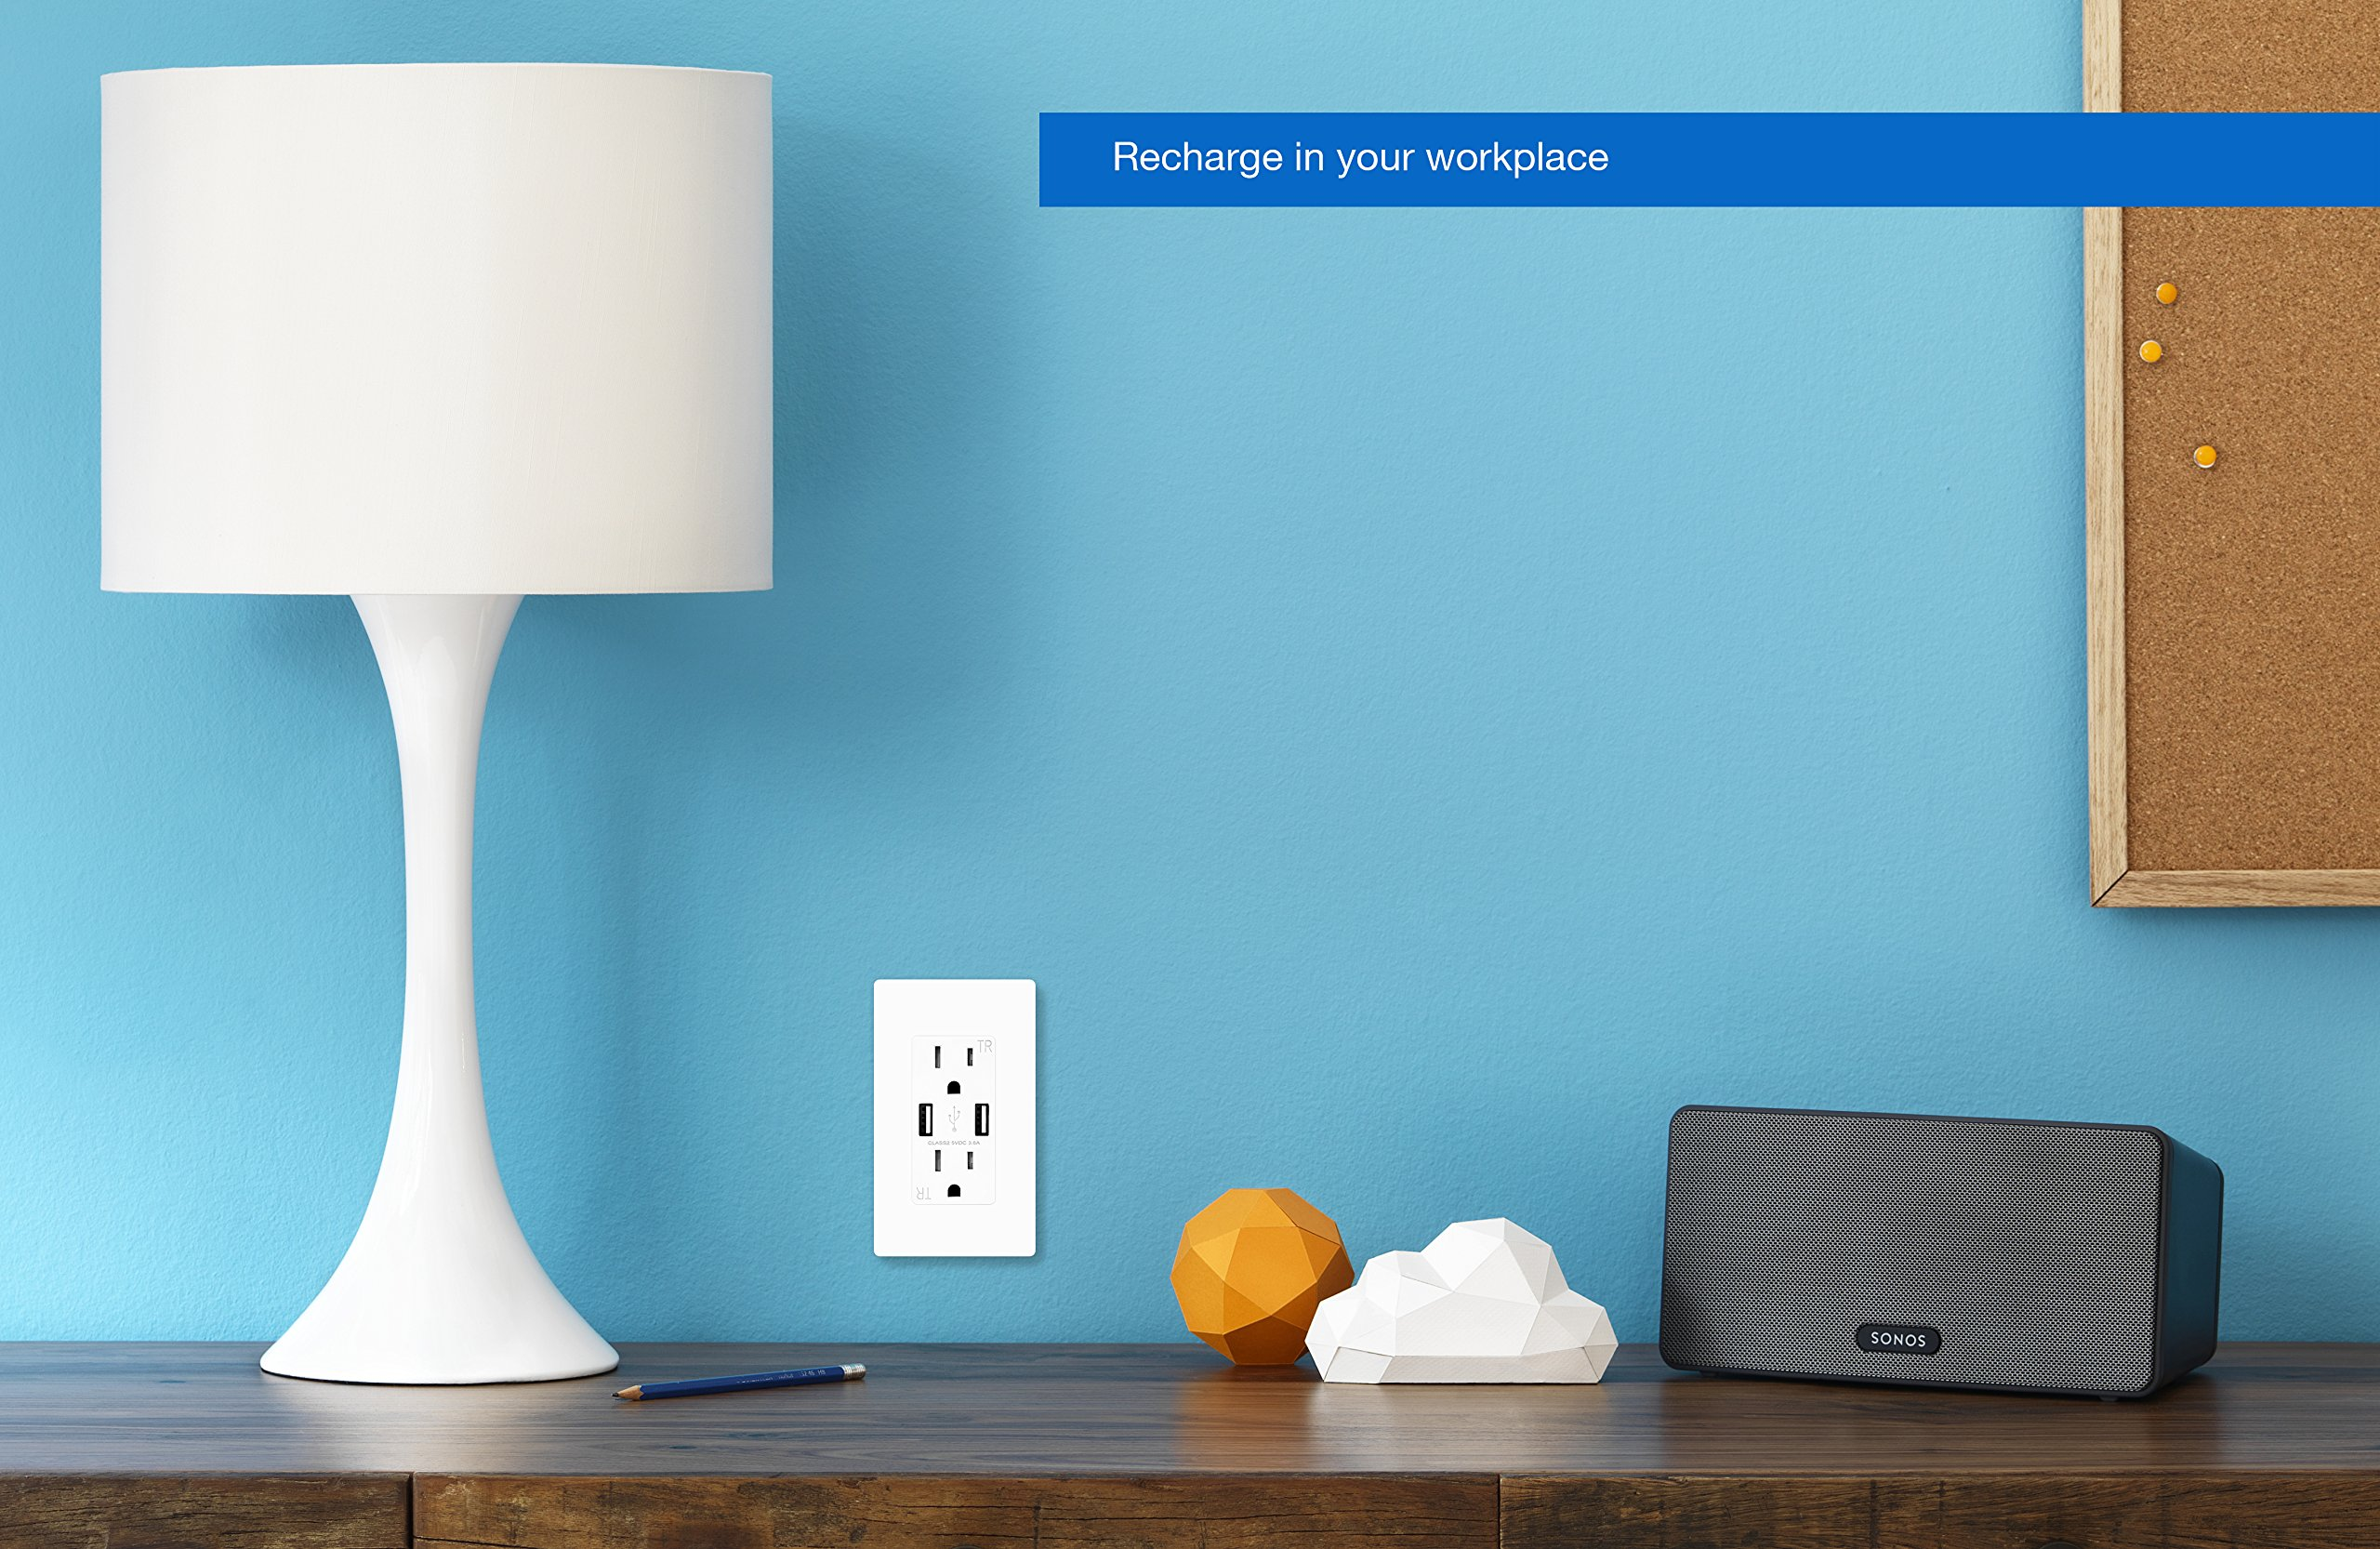 TOPELE Smart Fast Charger USB Outlet, Duplex Dual USB Wall Outlet with 15Amp 110V/120V Tamper-Resistant Electric Receptacle, Childproof USB Outlet Plug, UL Listed, White by TOPELE (Image #3)